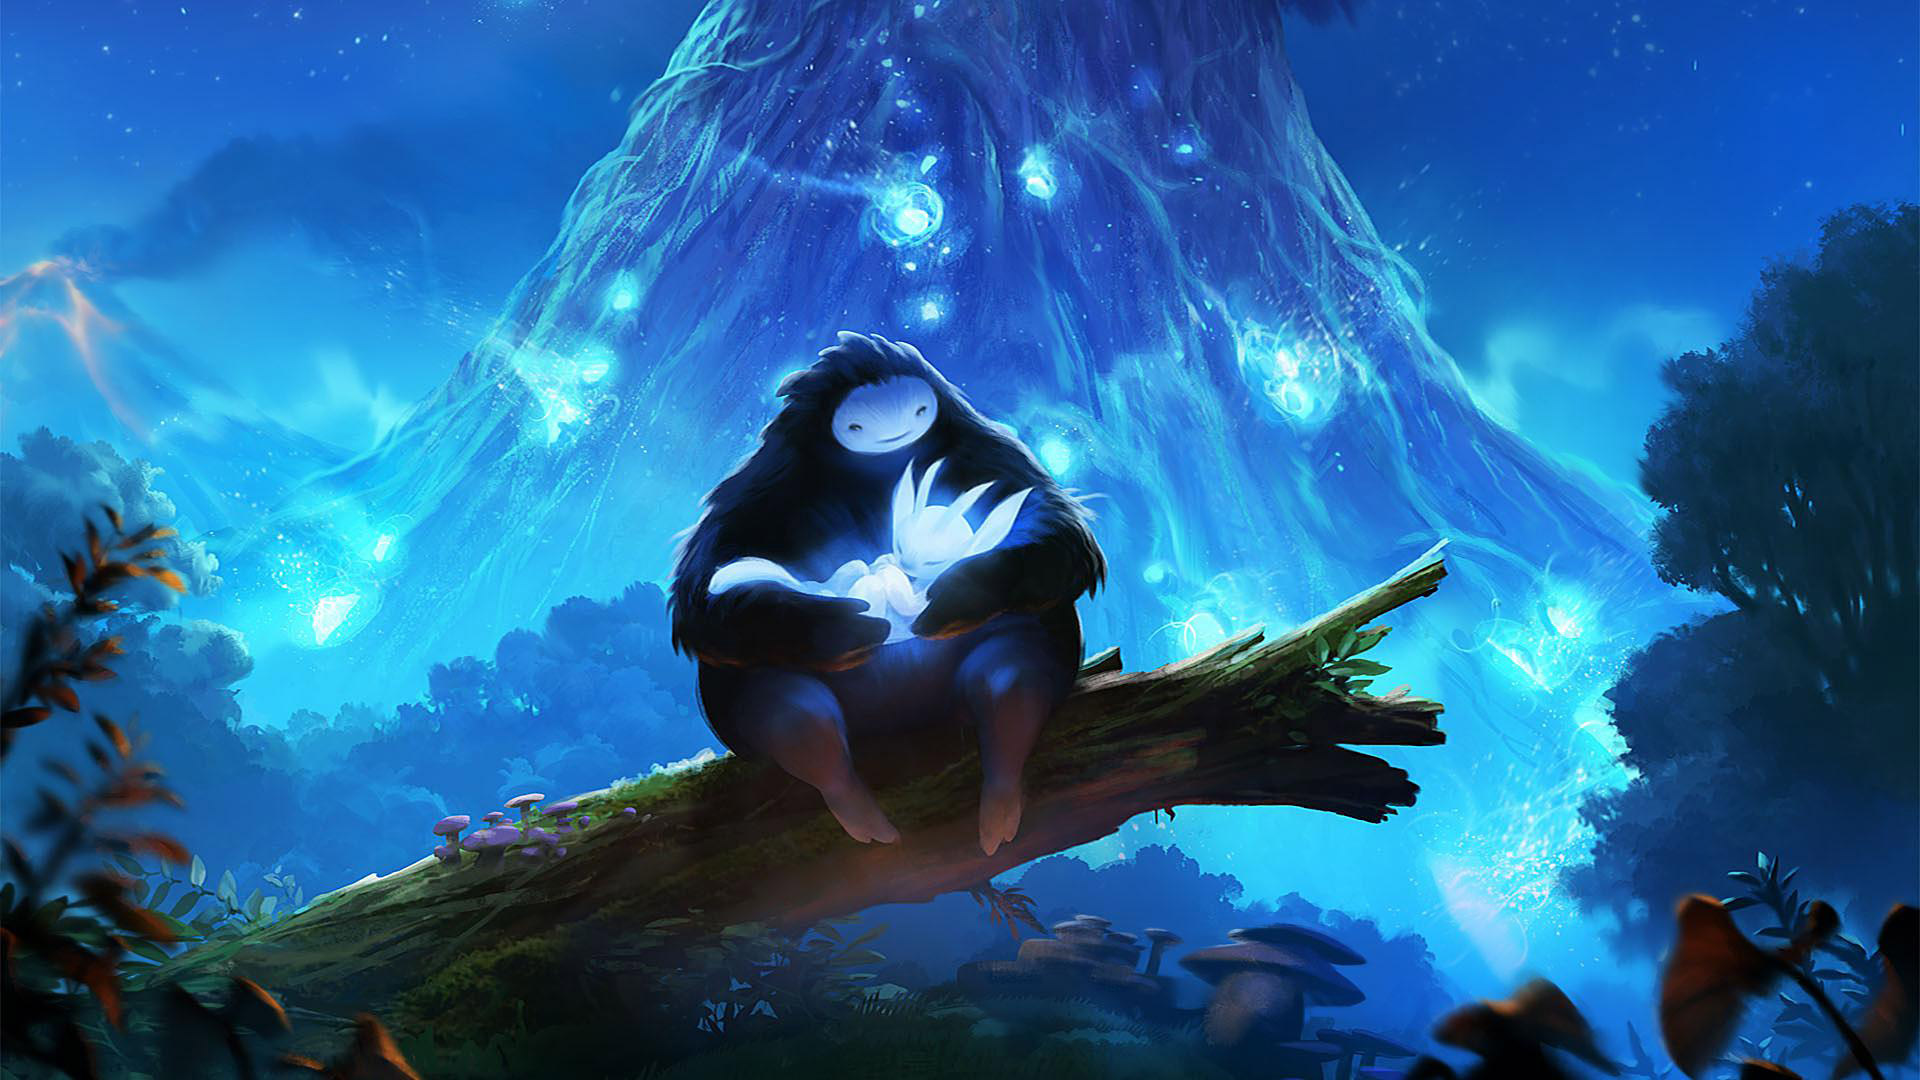 Ori And The Blind Forest Wallpaper in 1920x1080